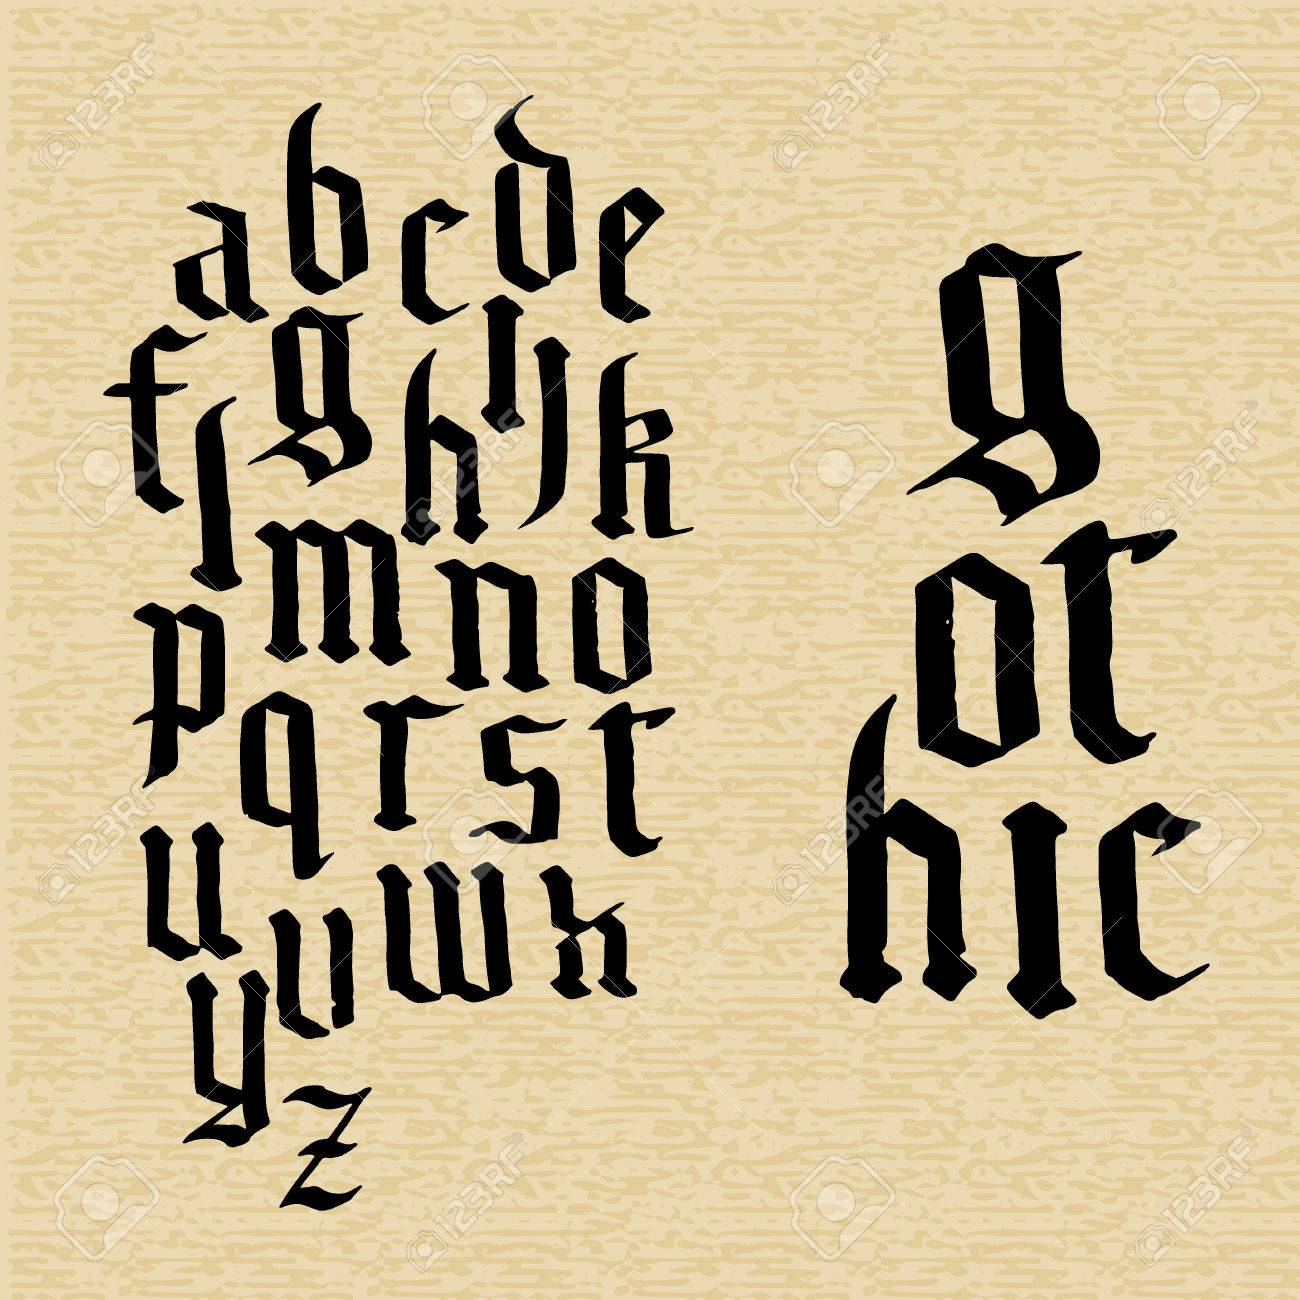 vector illustration of hand draw gothic font for design website